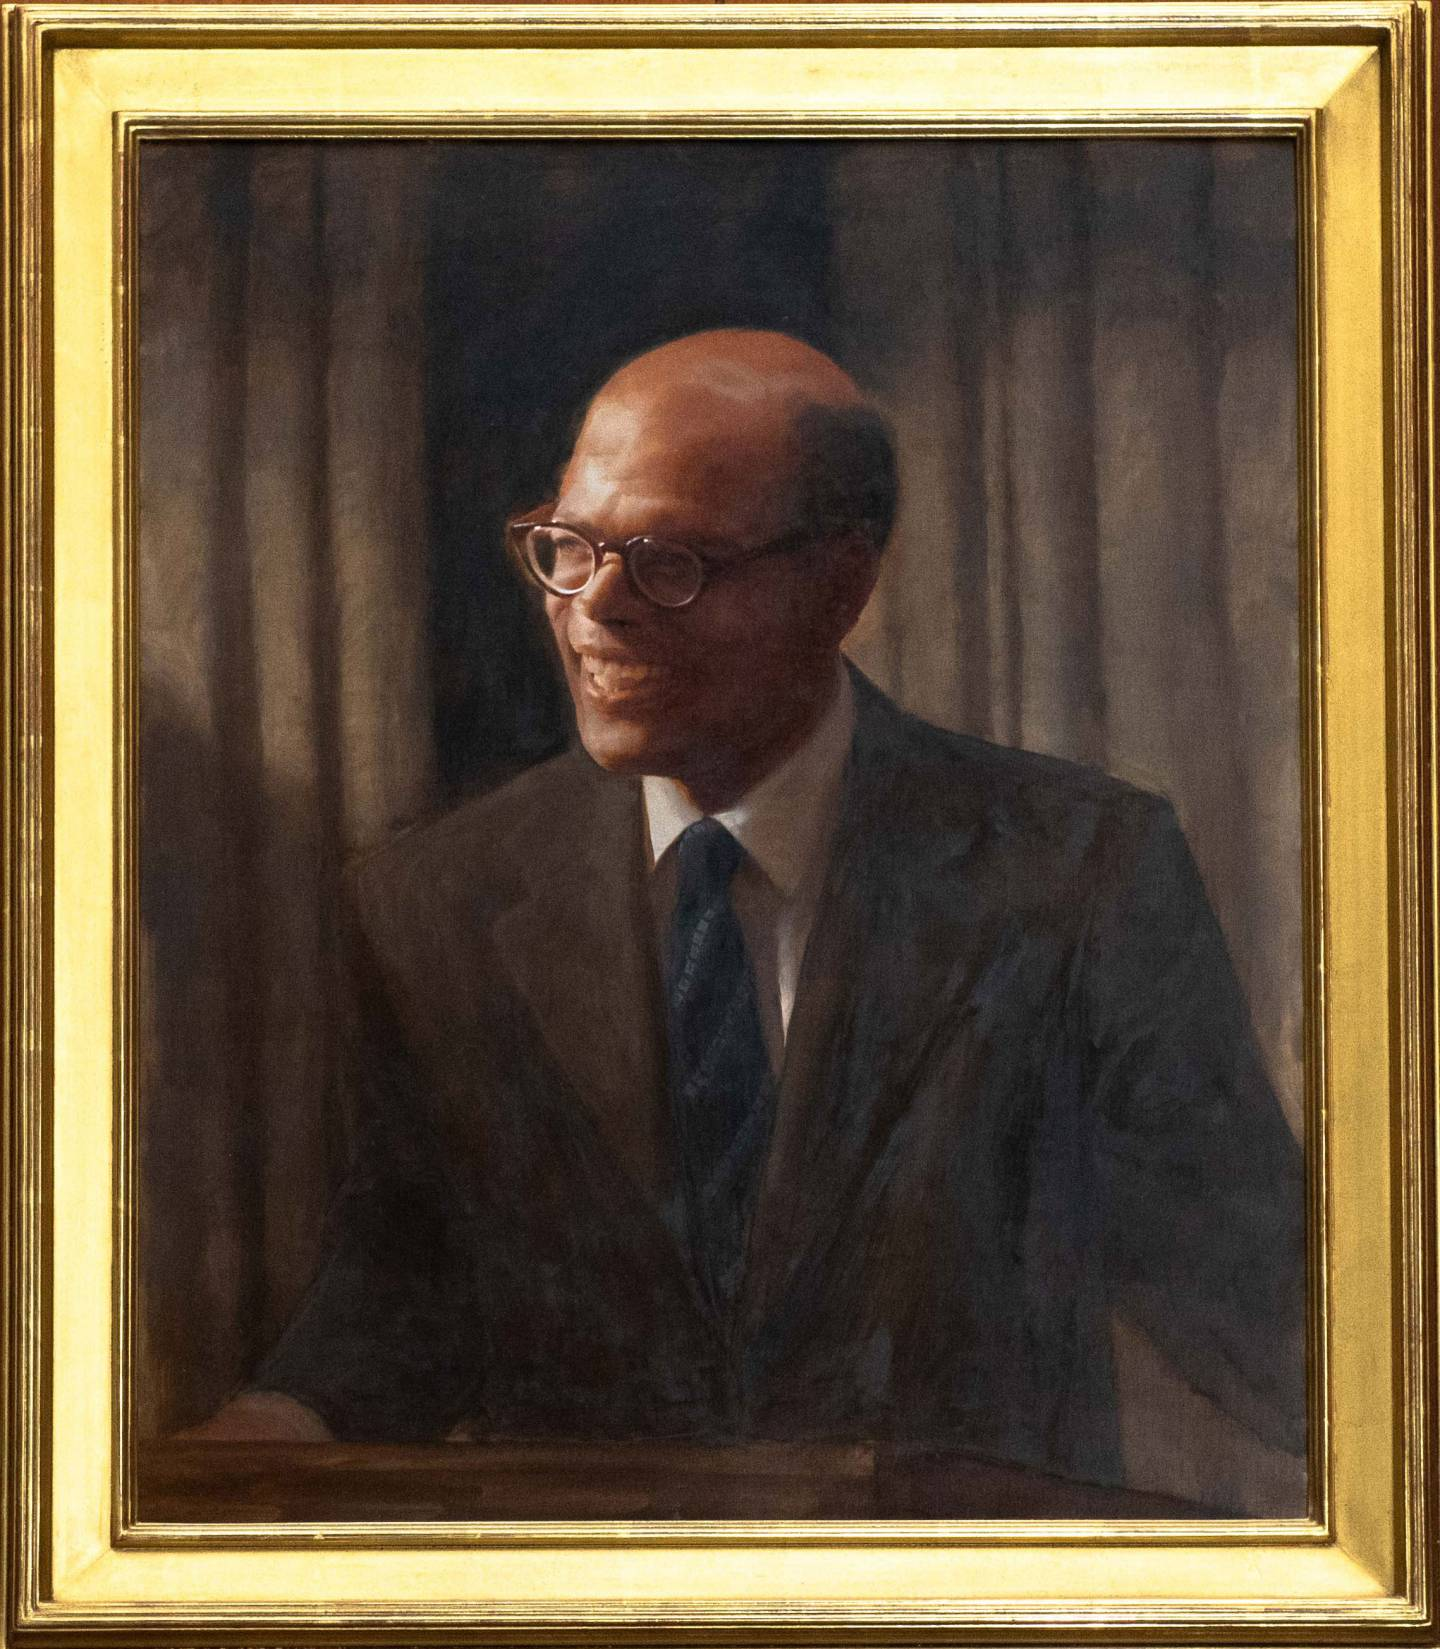 Framed portrait of Sir Arthur Lewis by Daniel Adel